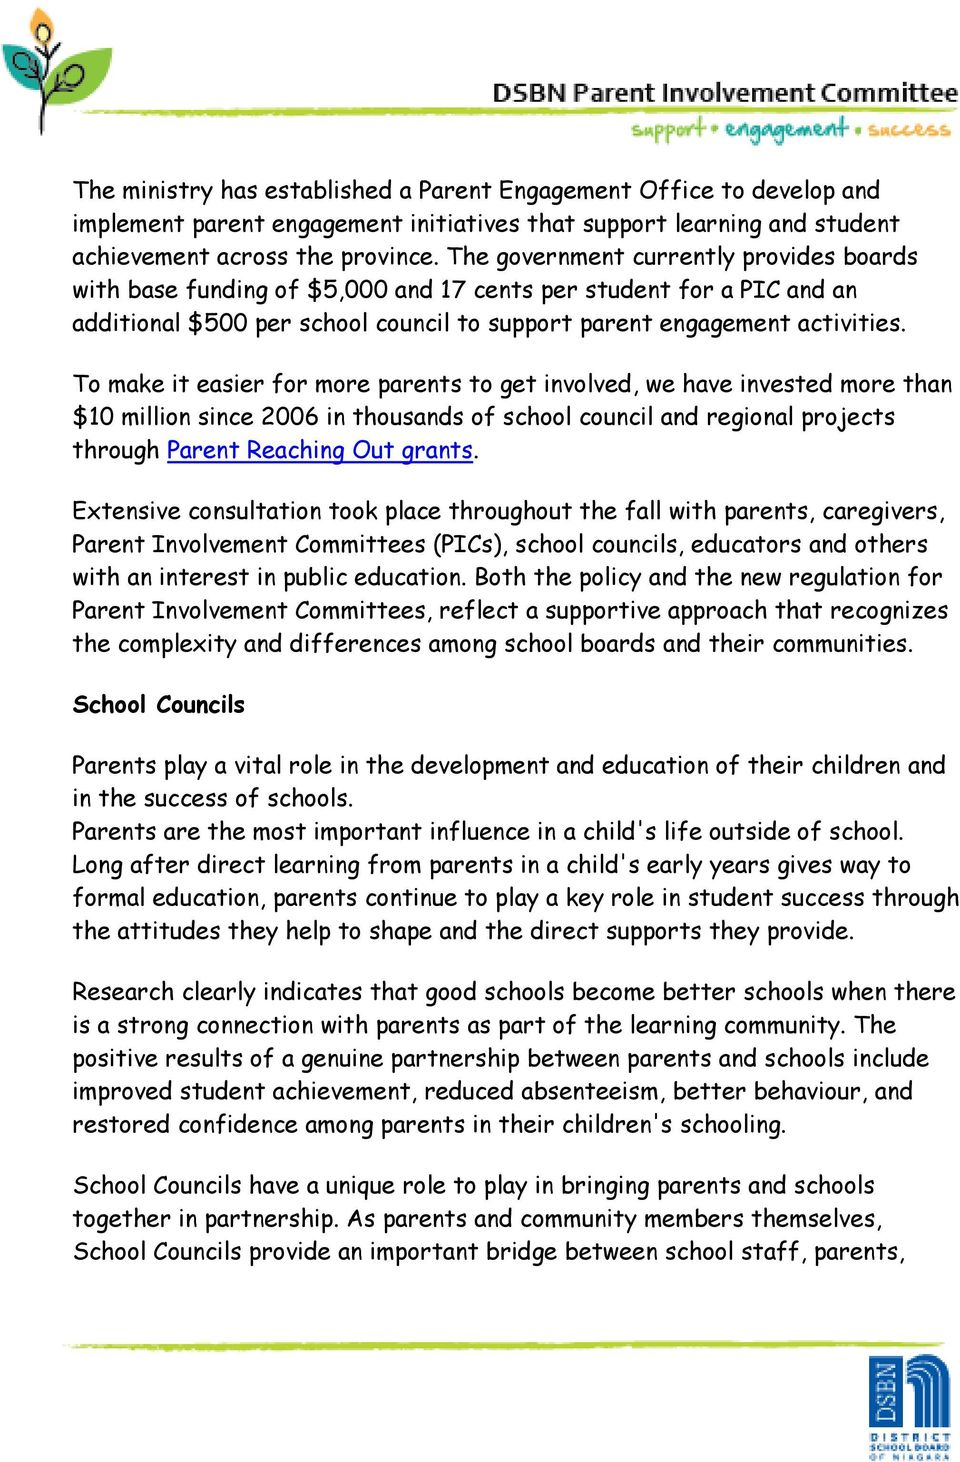 To make it easier for more parents to get involved, we have invested more than $10 million since 2006 in thousands of school council and regional projects through Parent Reaching Out grants.